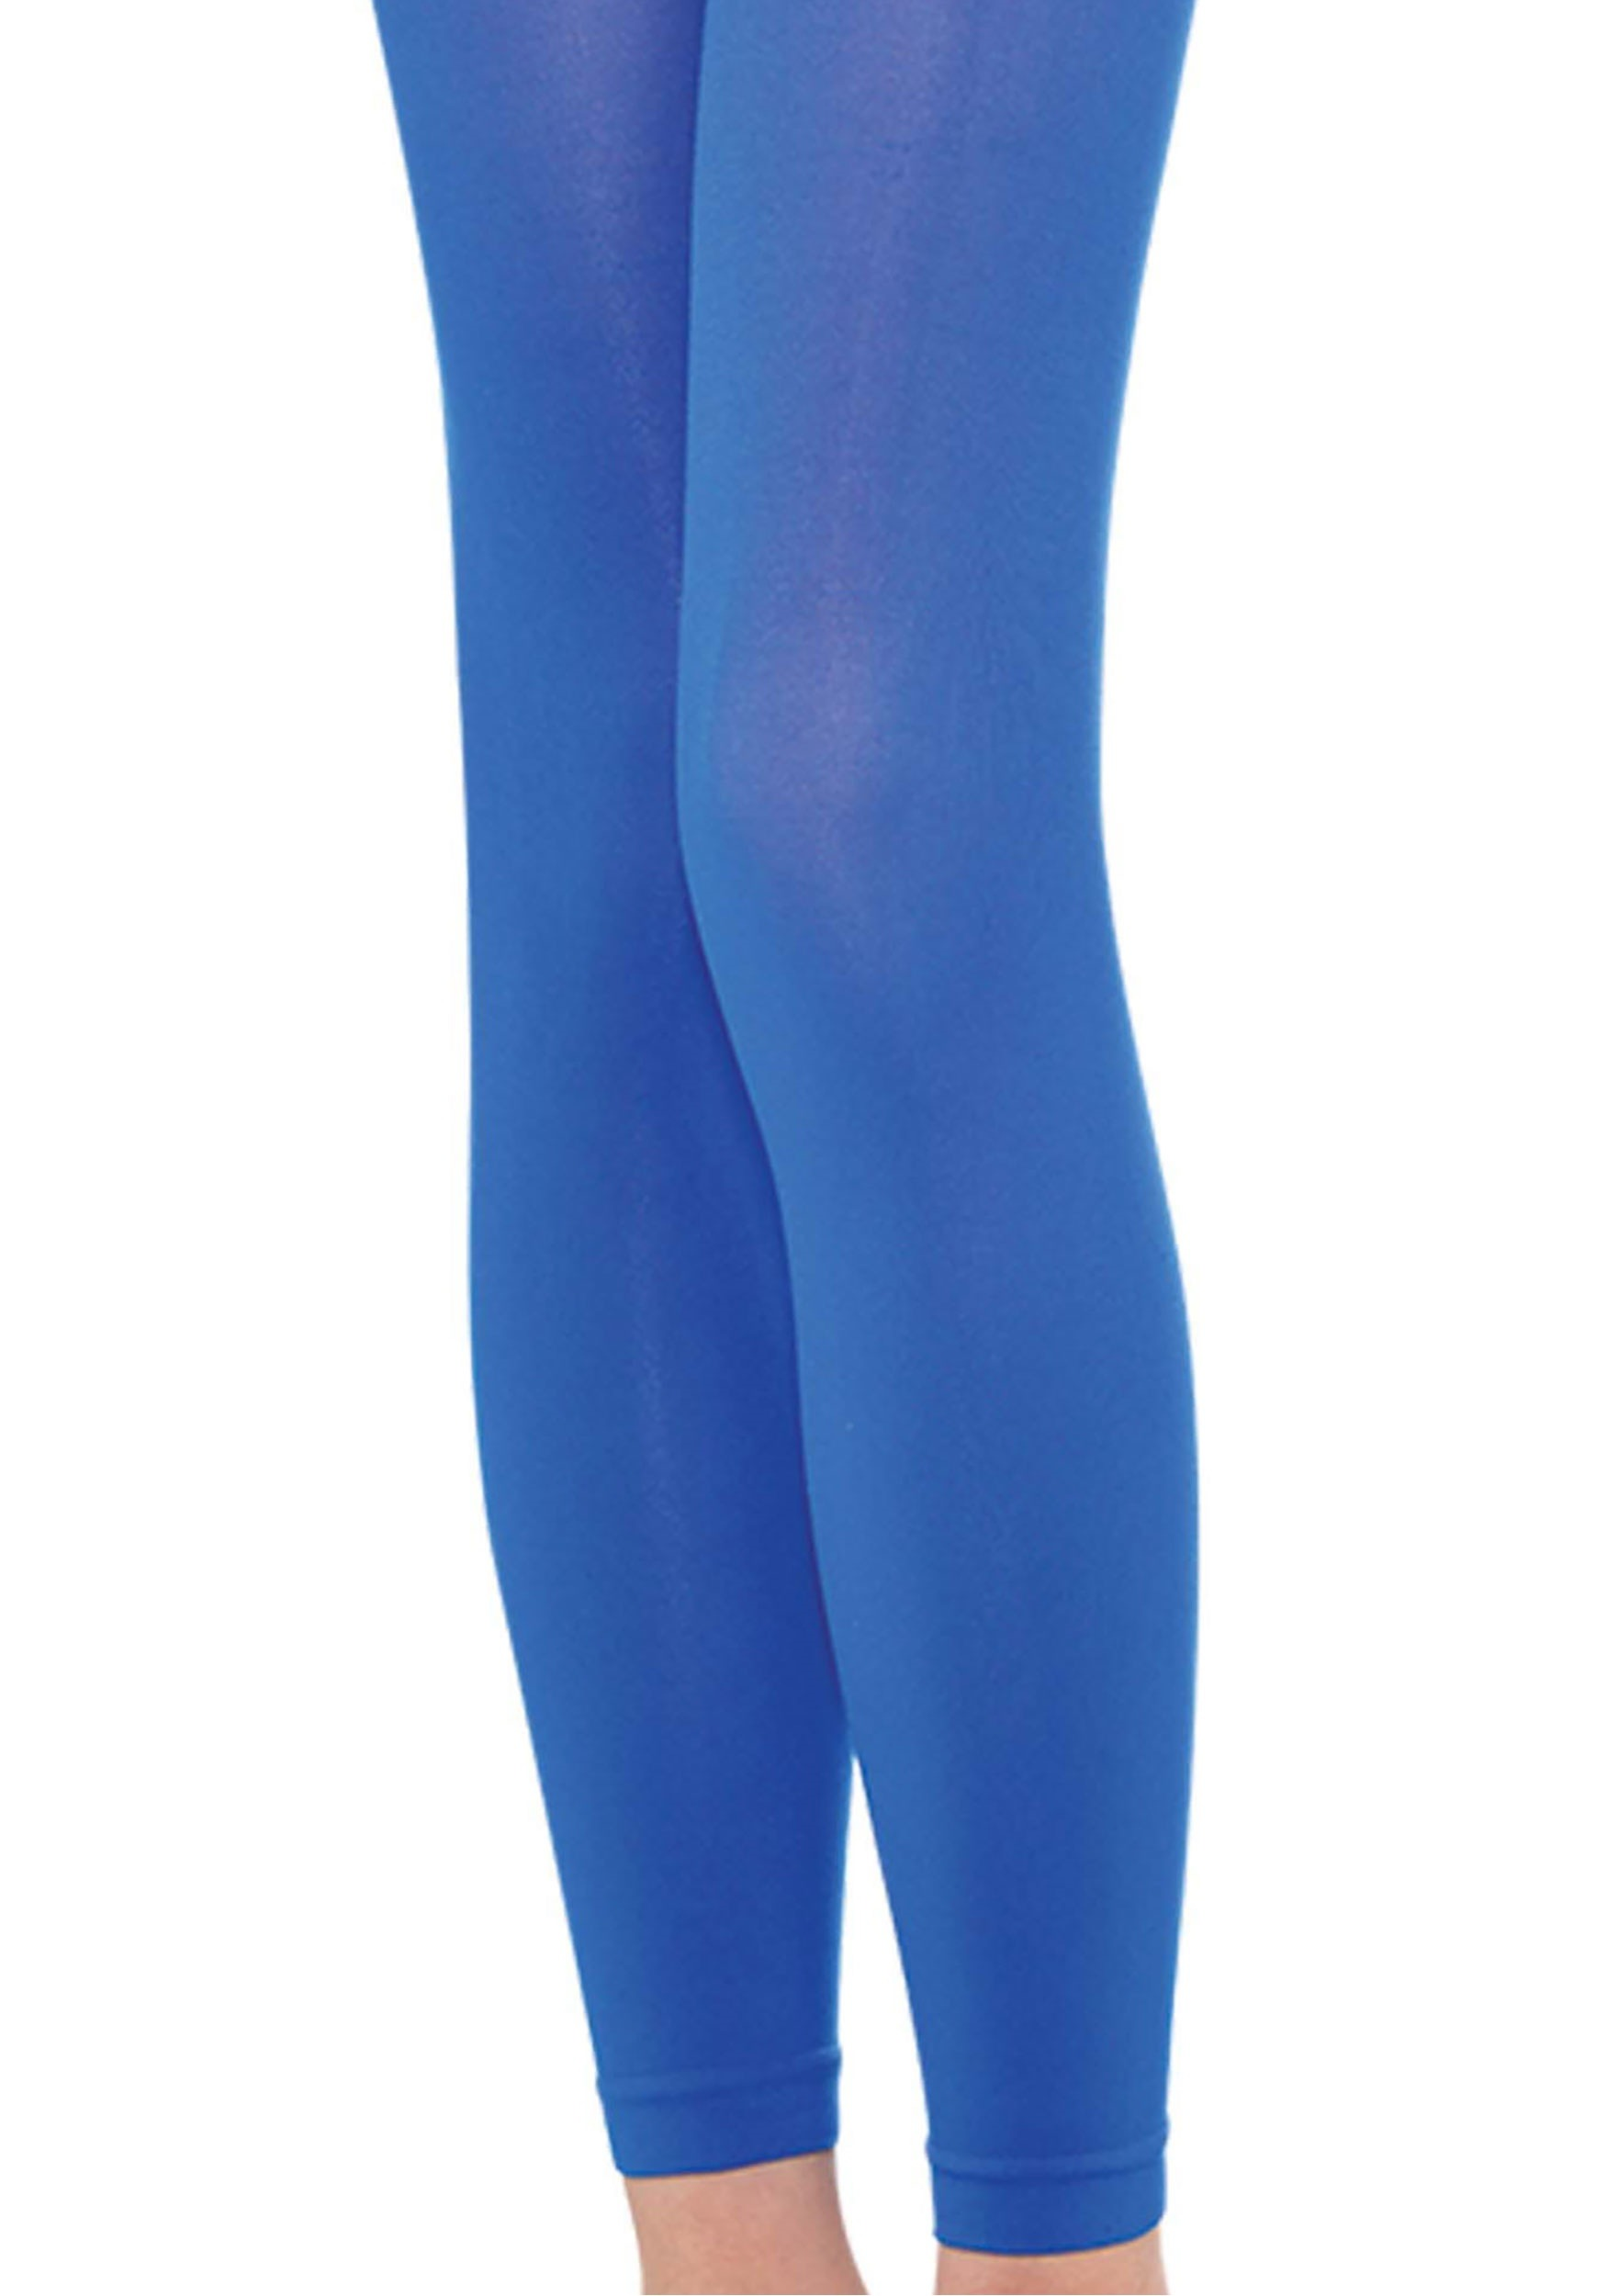 Blue_Adult_Footless_Tights